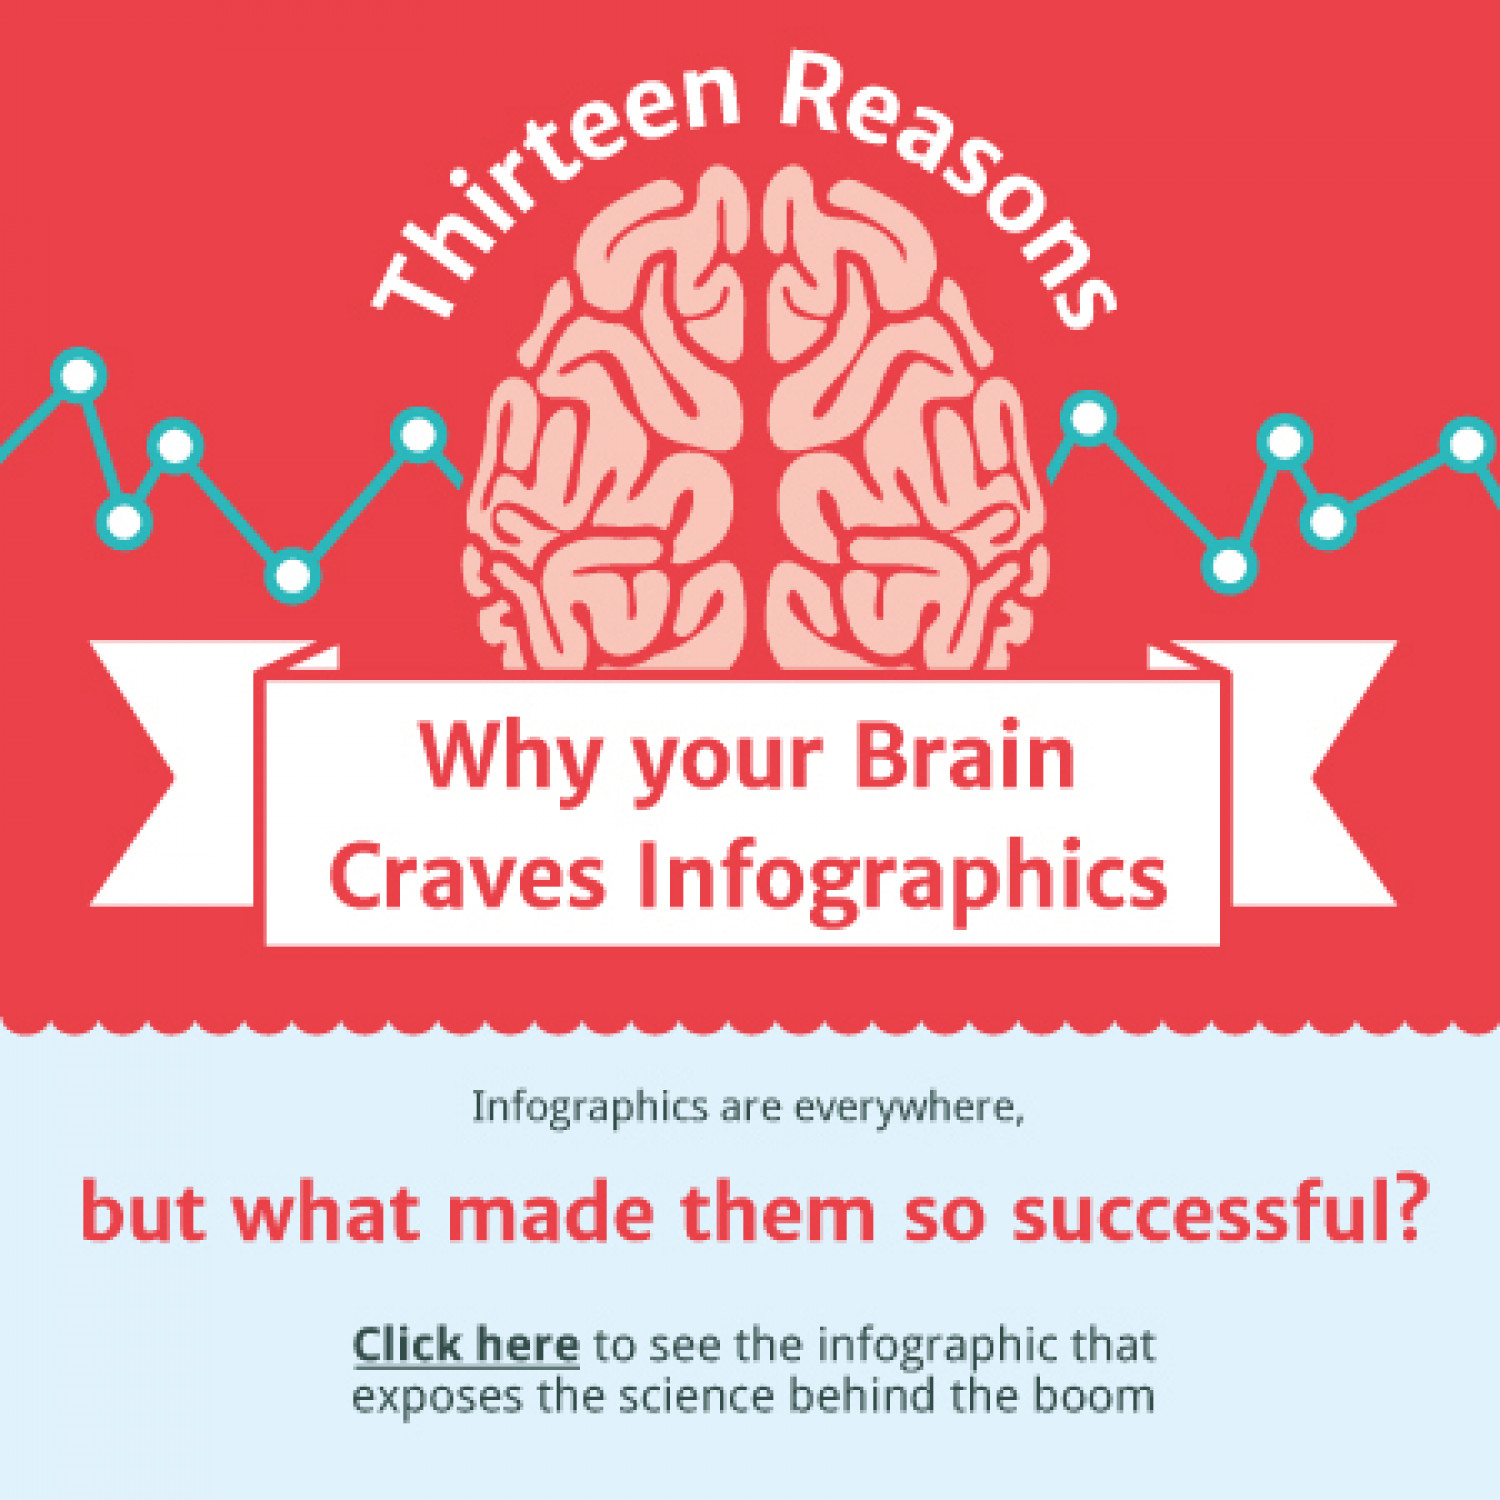 13 Reasons Why Your Brain Craves Infographics Infographic